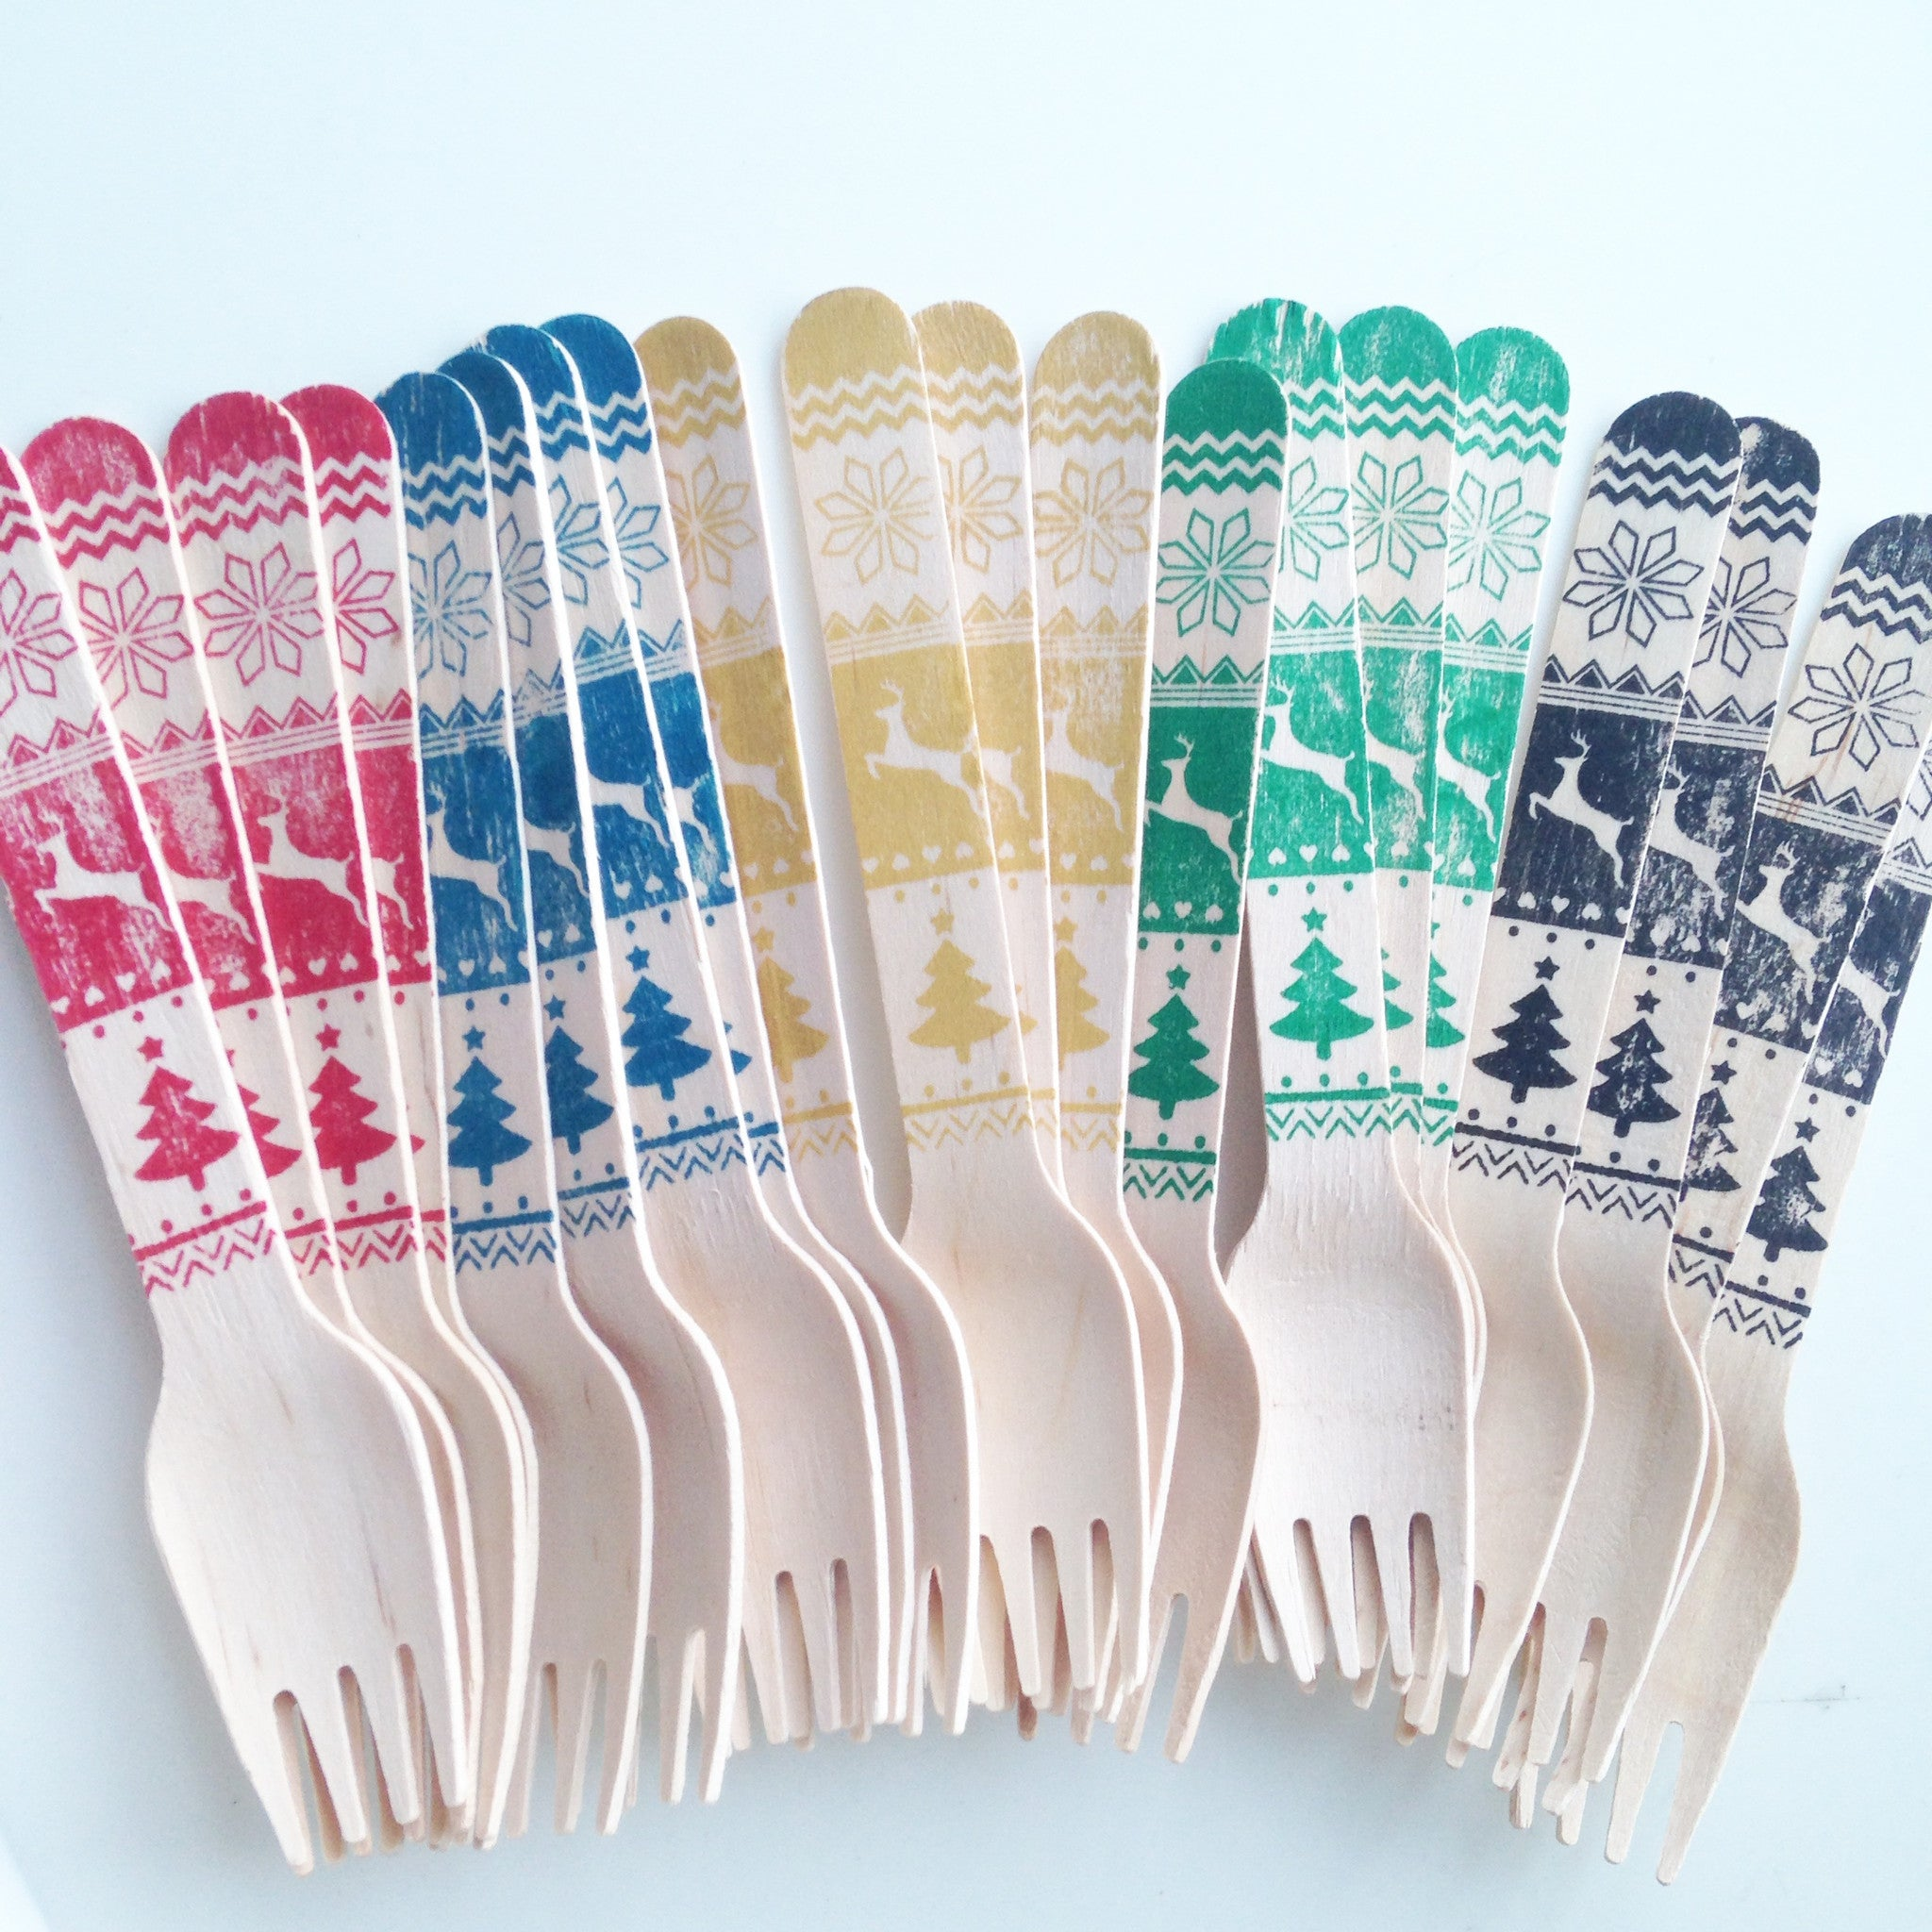 Festive Wooden Forks - The Sweet Hostess  - 1